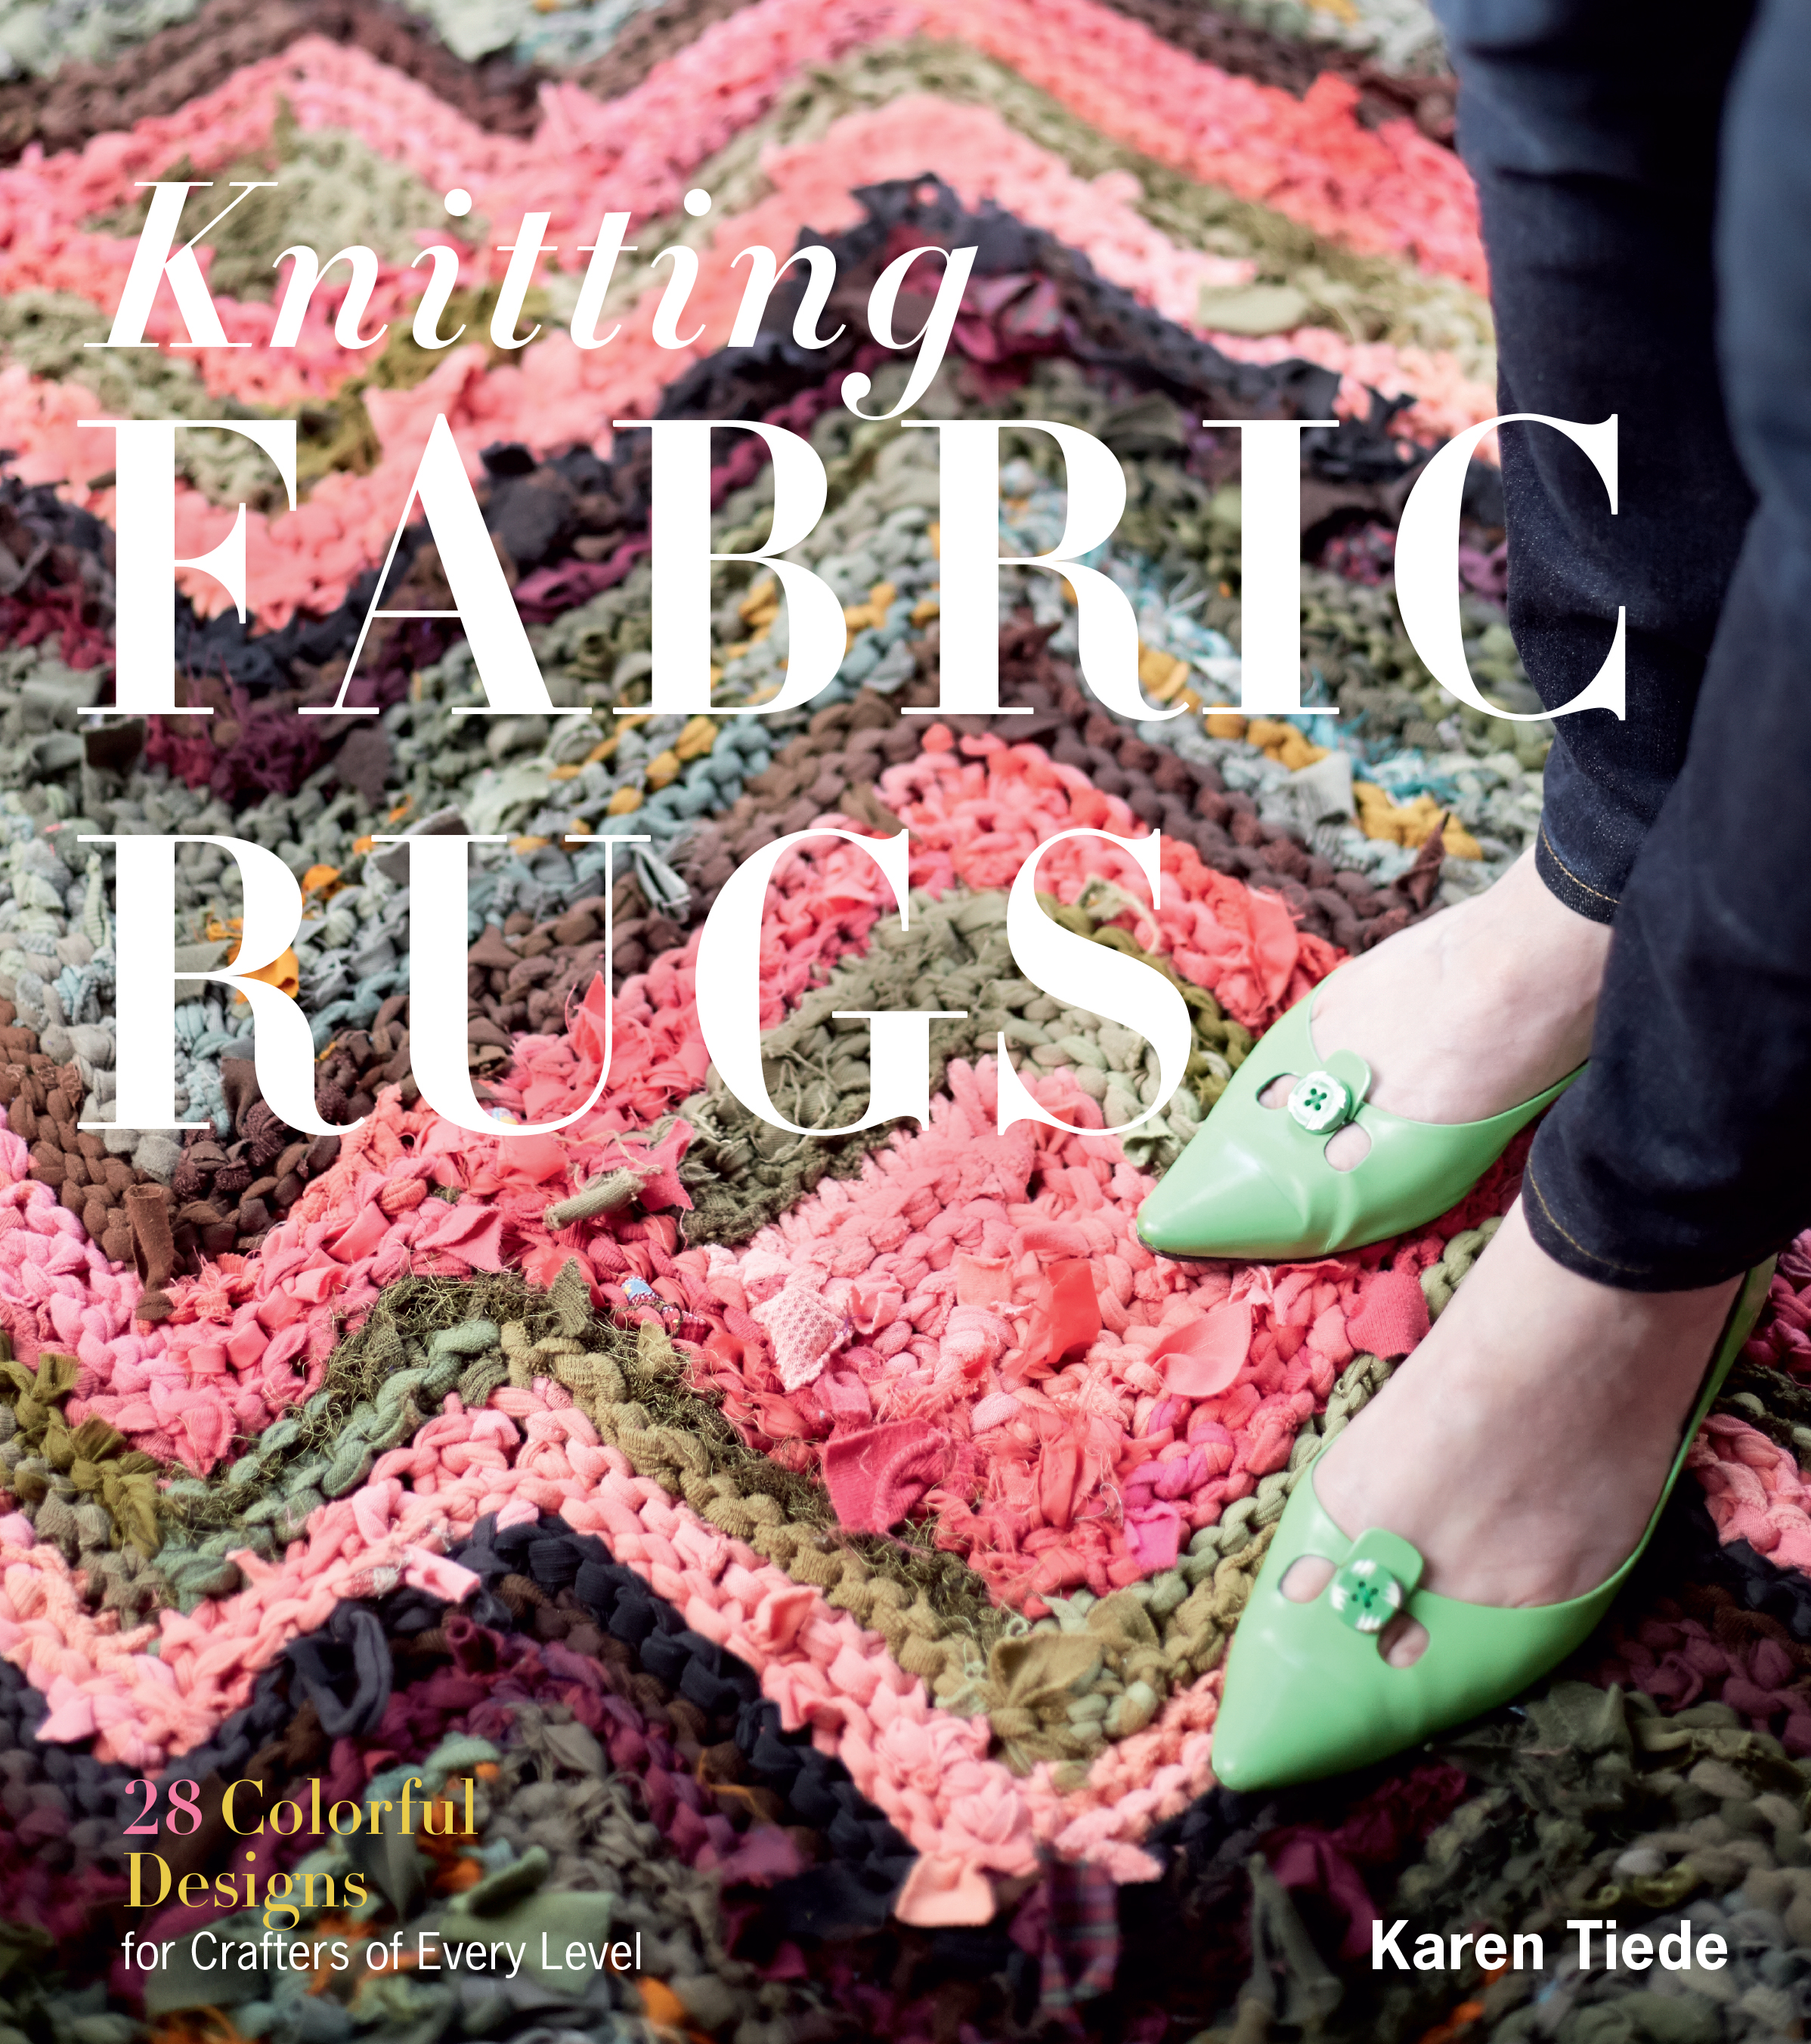 Knitting Fabric Rugs 28 Colorful Designs for Crafters of Every Level - Karen Tiede